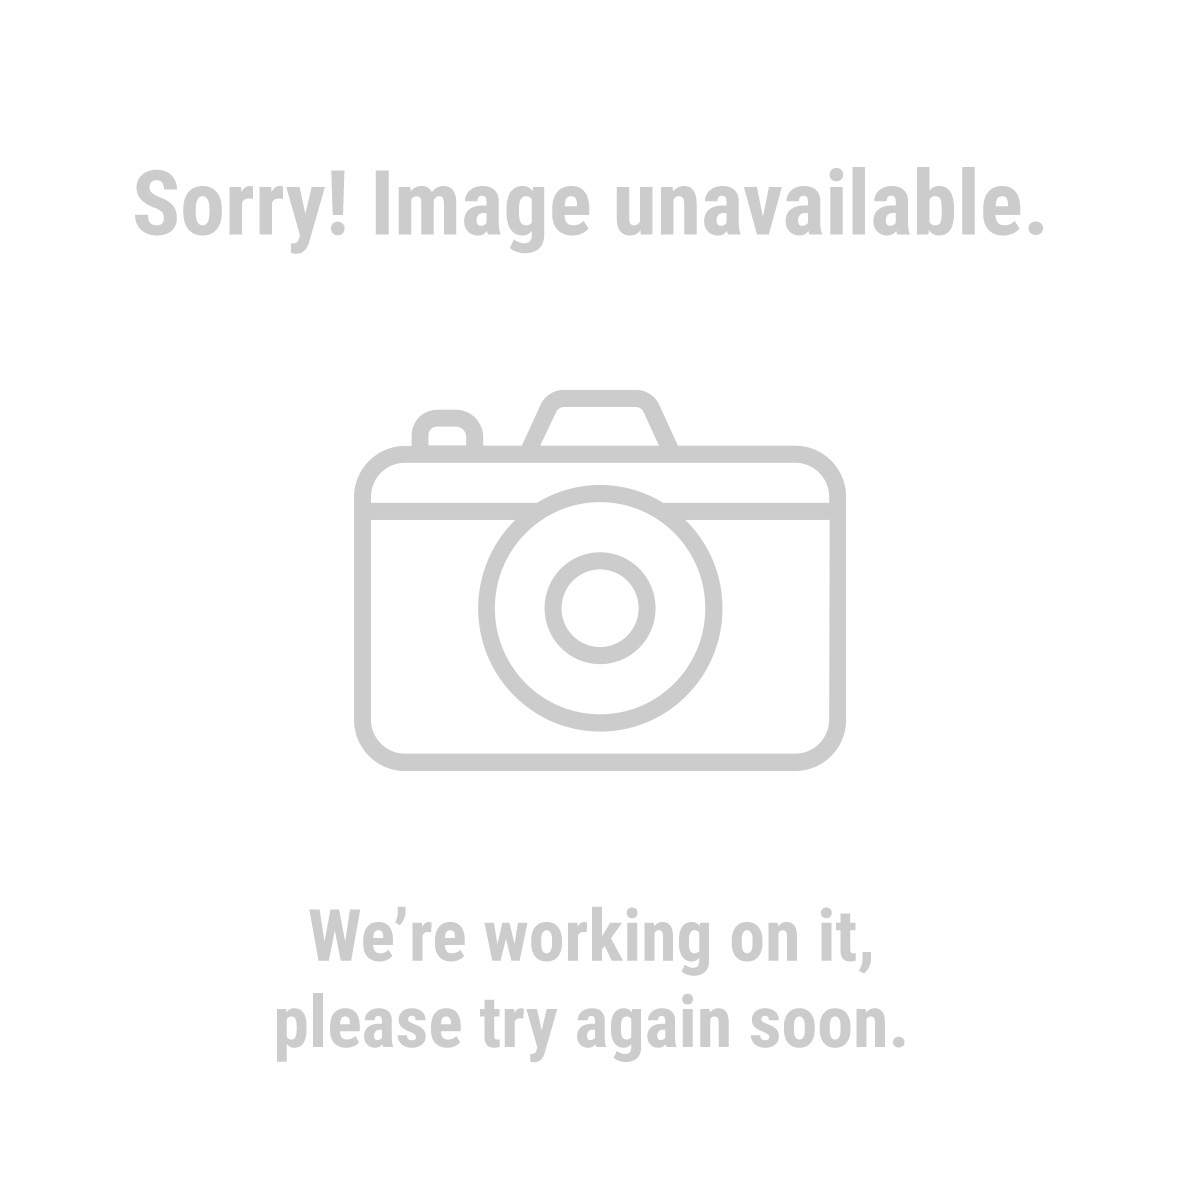 Warrior® 68883 7 in. Segmented Dry Cut Diamond Blade for Masonry